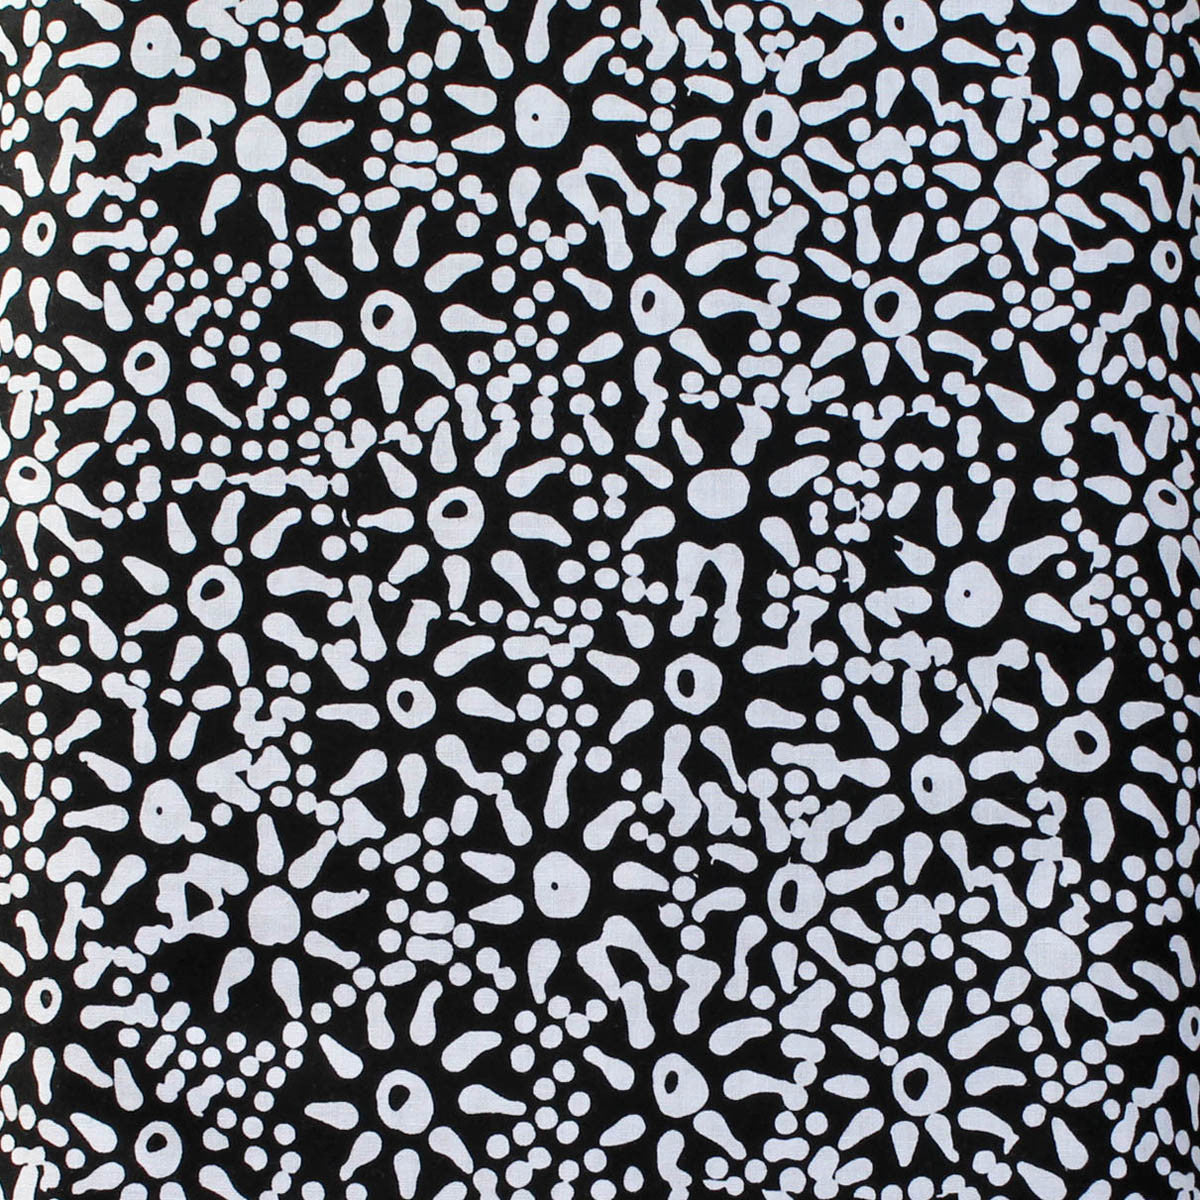 WATERHOLE & SEEDS BLACK by Aboriginal Artist  ANNA PITJARA